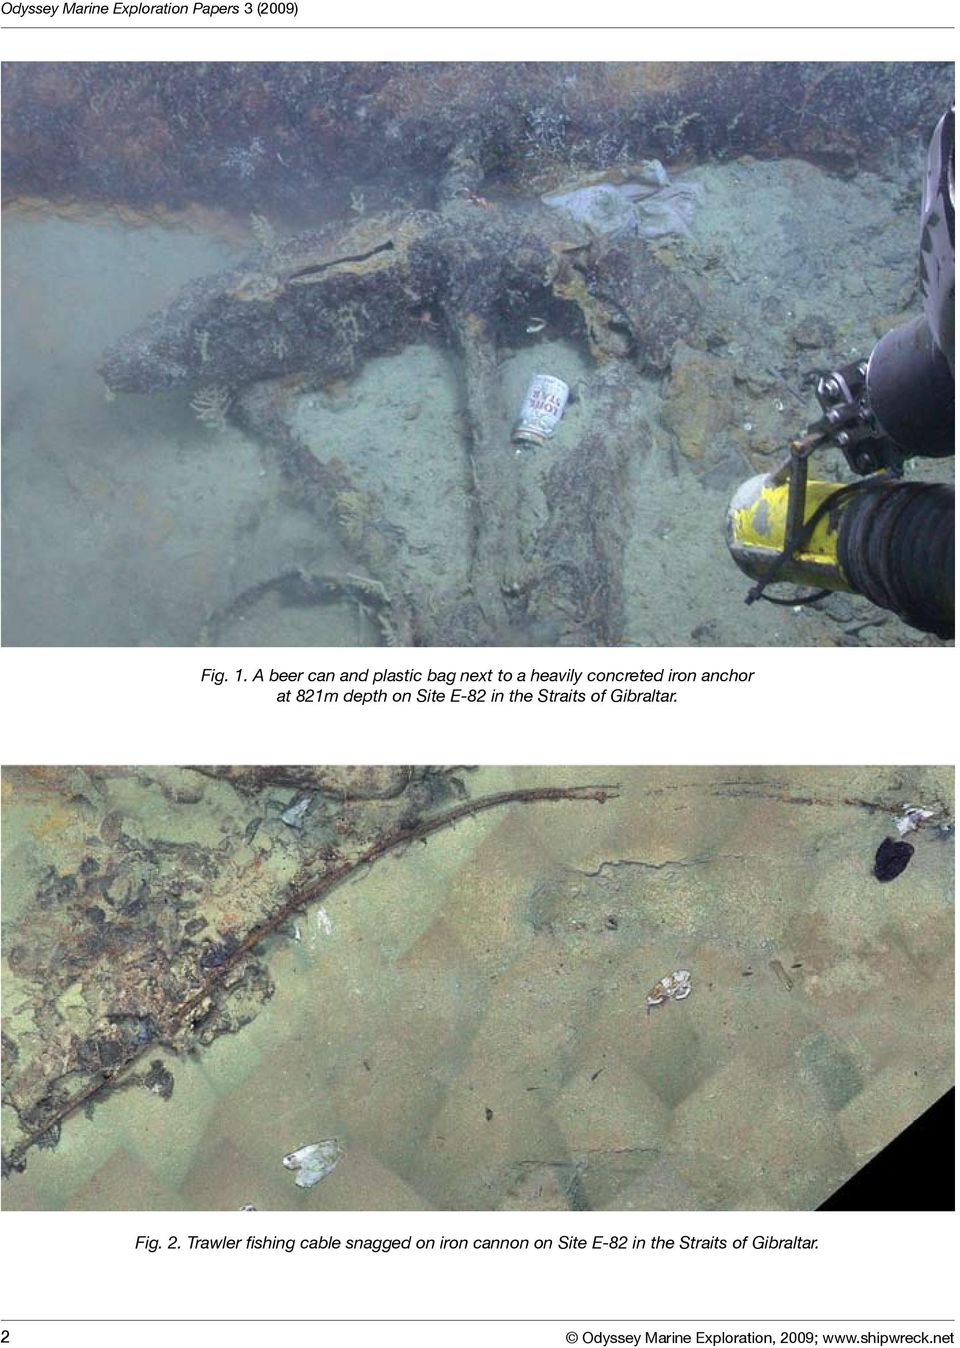 821m depth on Site E-82 in the Straits of Gibraltar. Fig. 2.